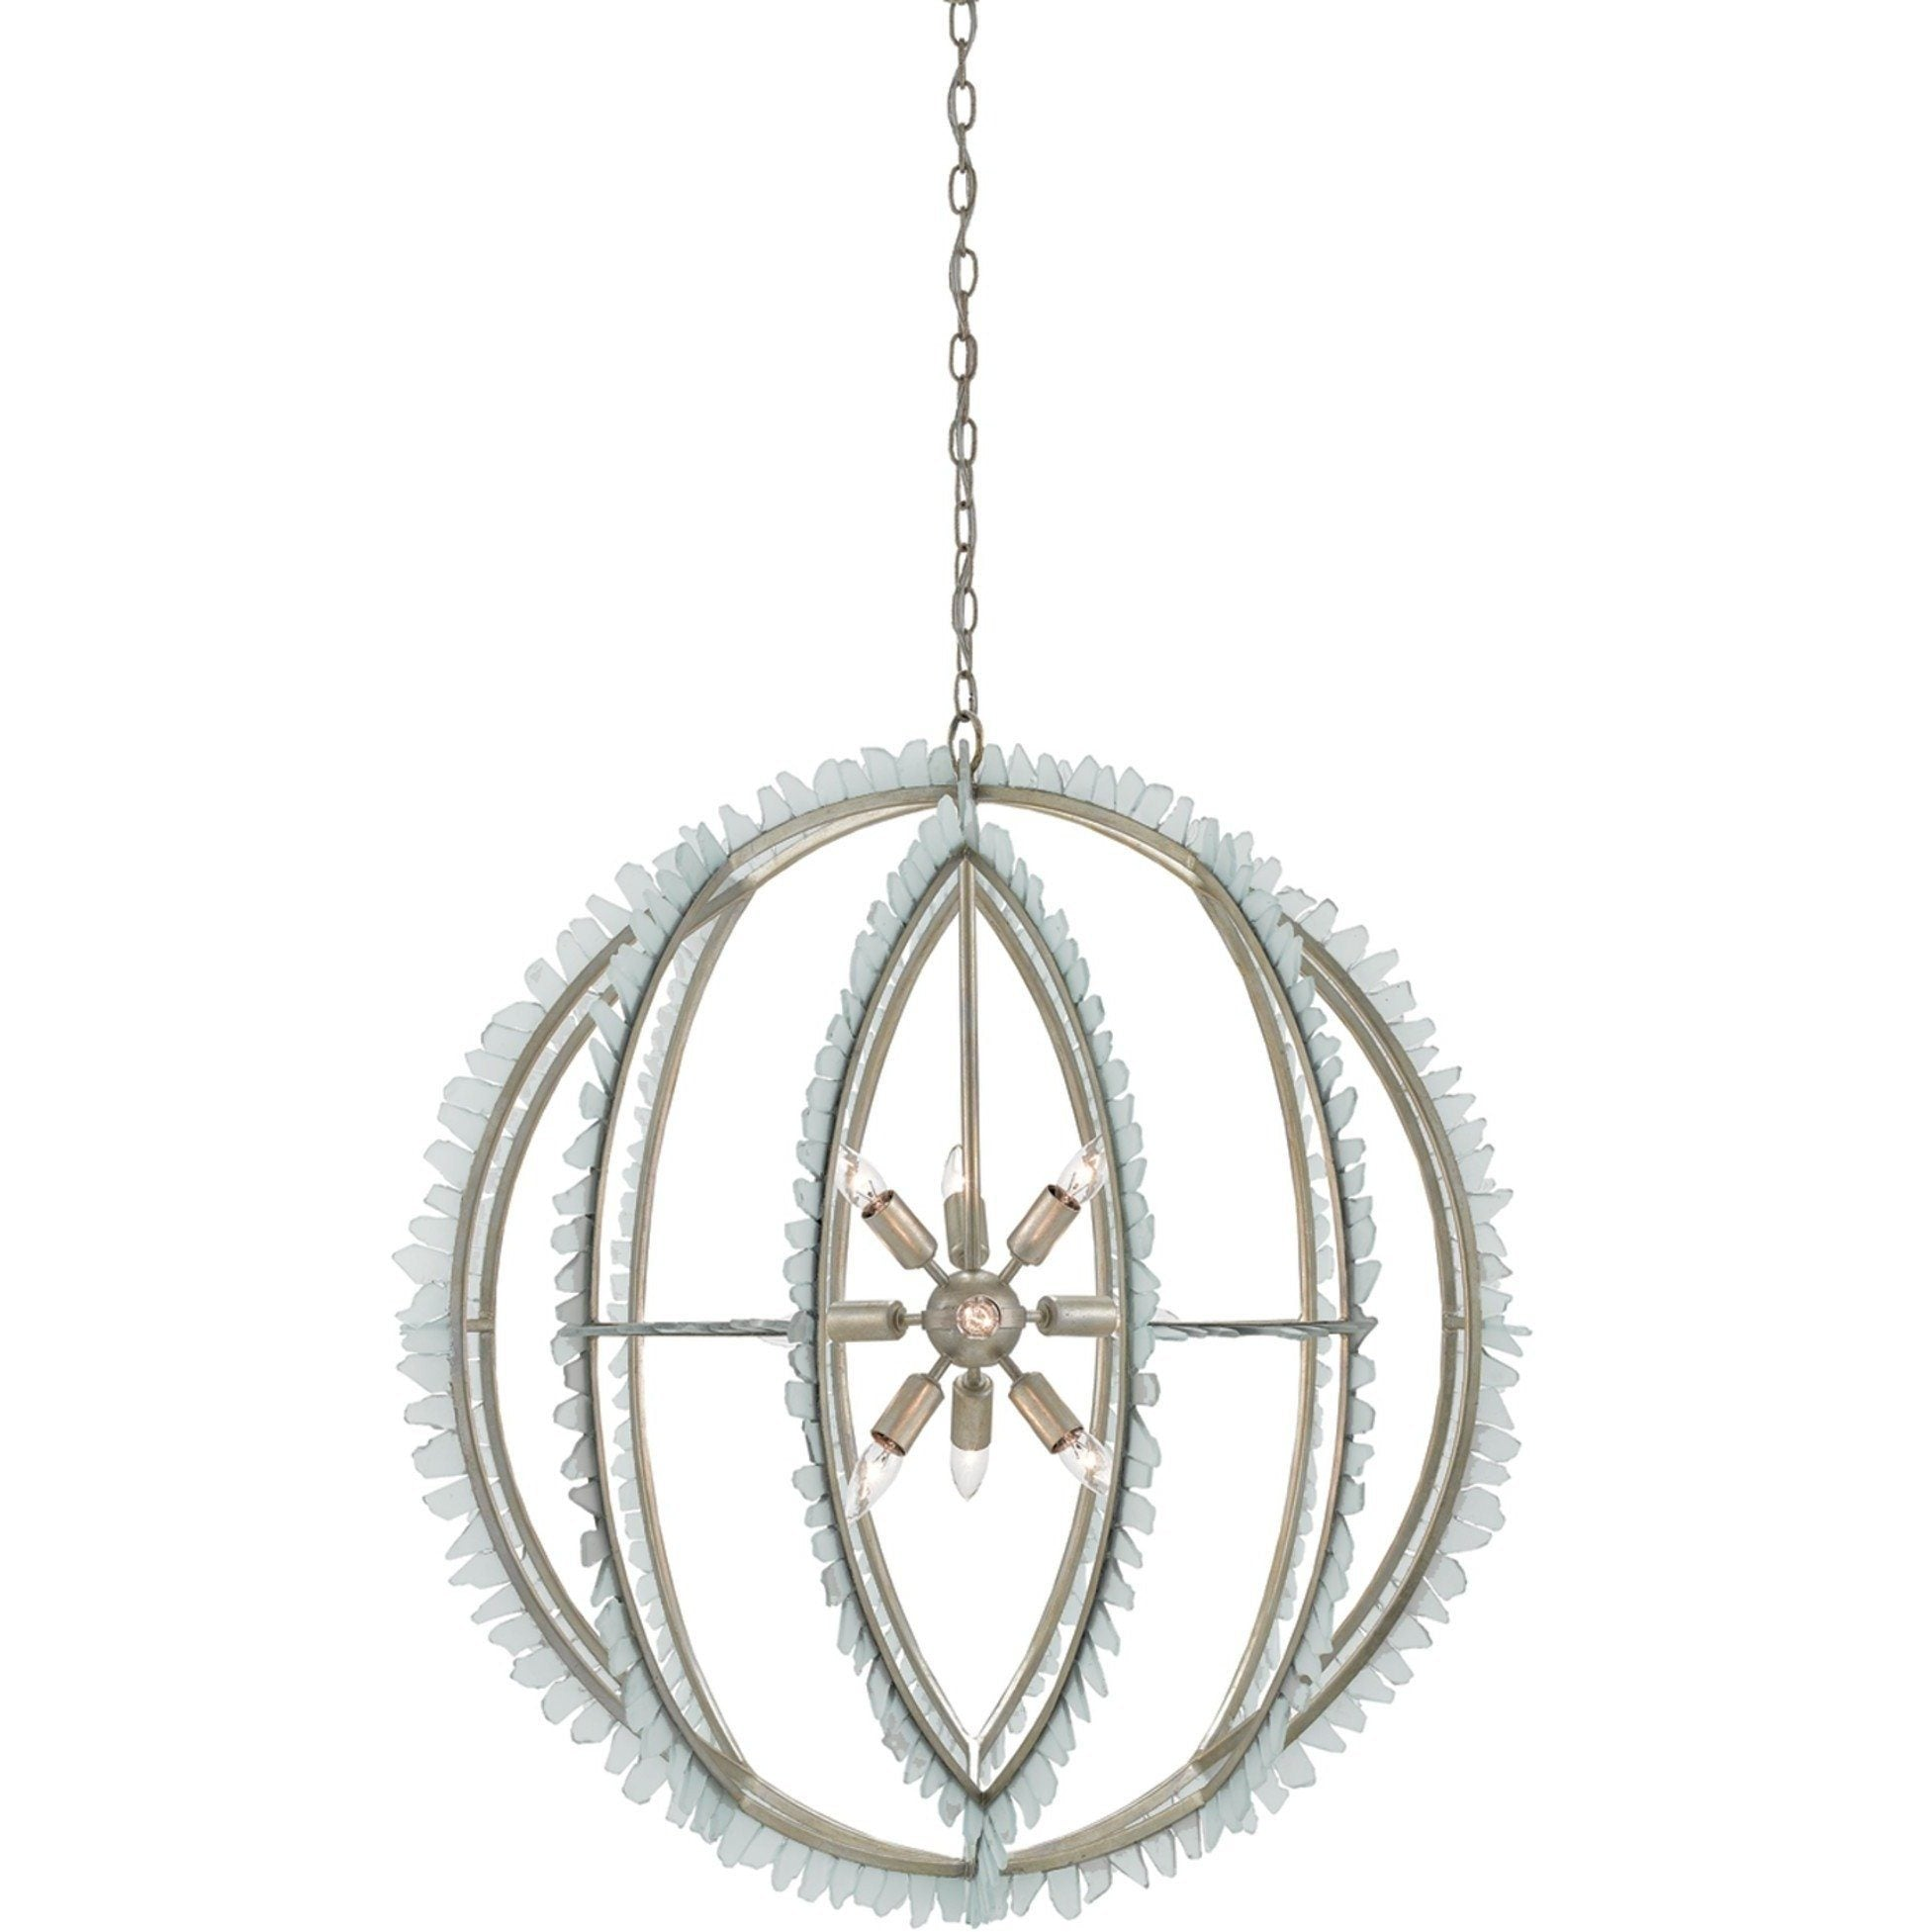 Currey and pany Saltwater Orb Chandelier 9000 0210